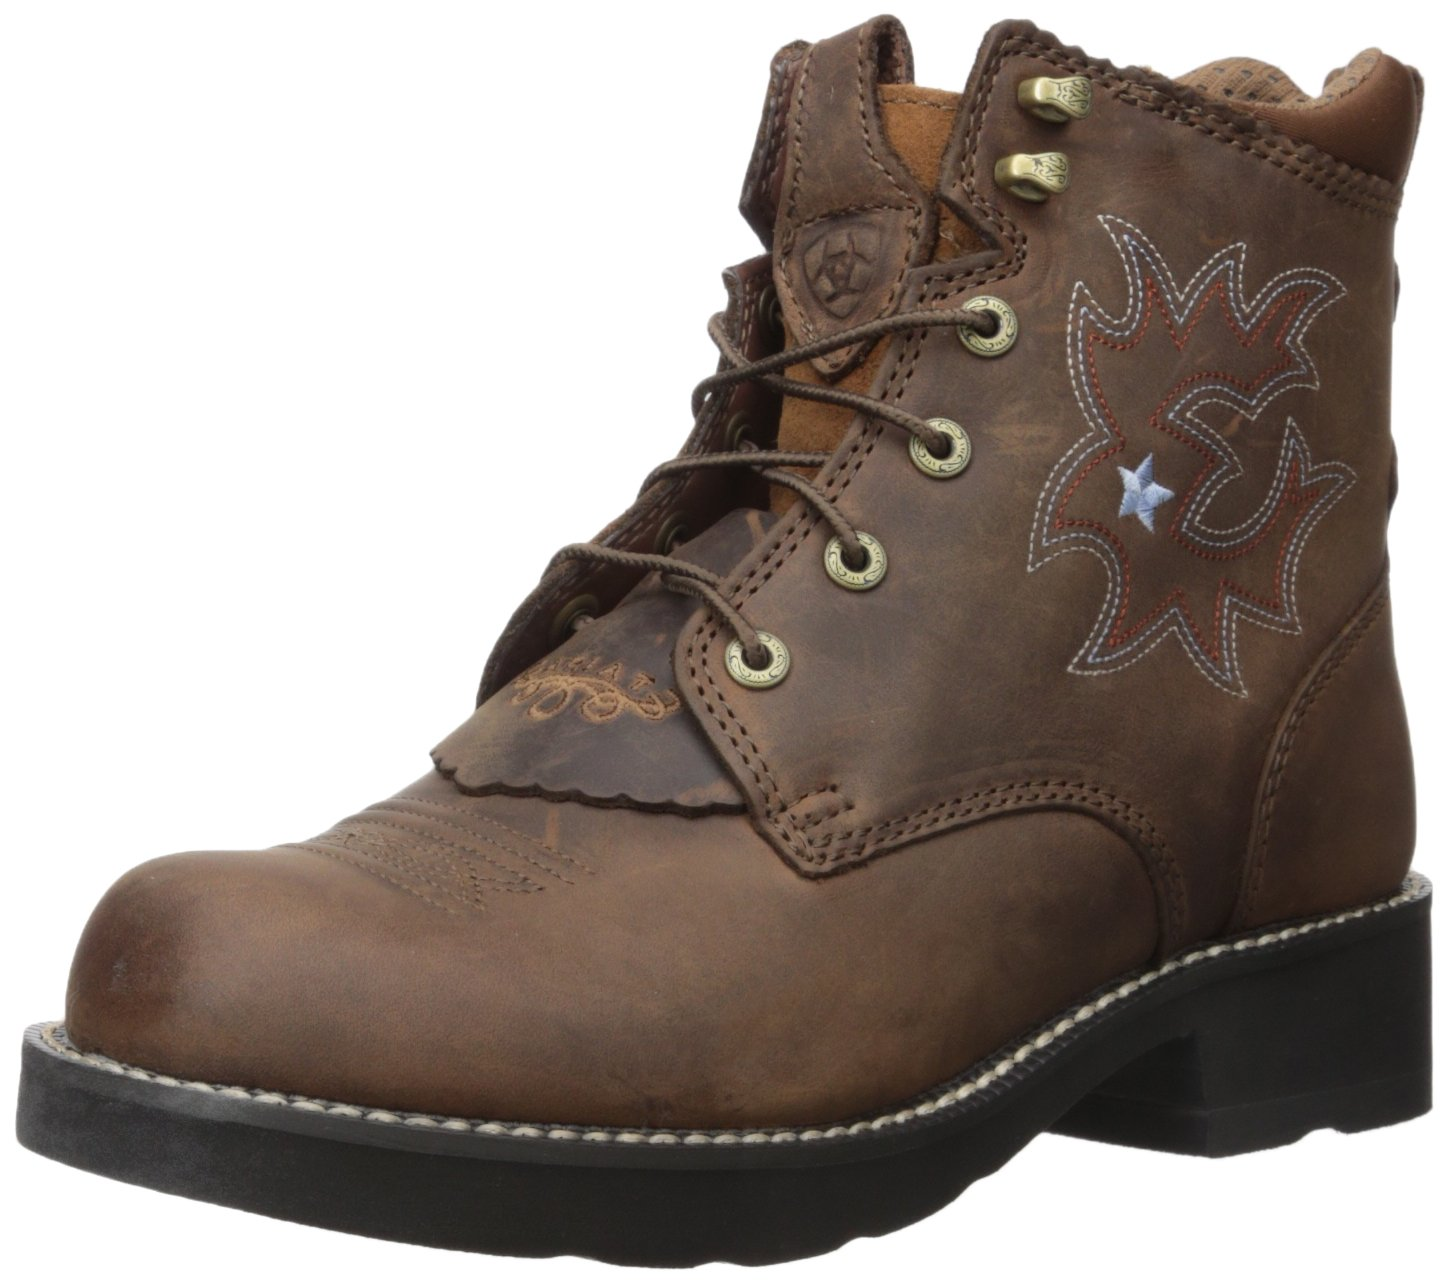 Ariat Women's Probaby Lacer Western Cowboy Boot B000O13FGQ 11 B(M) US|Driftwood Brown